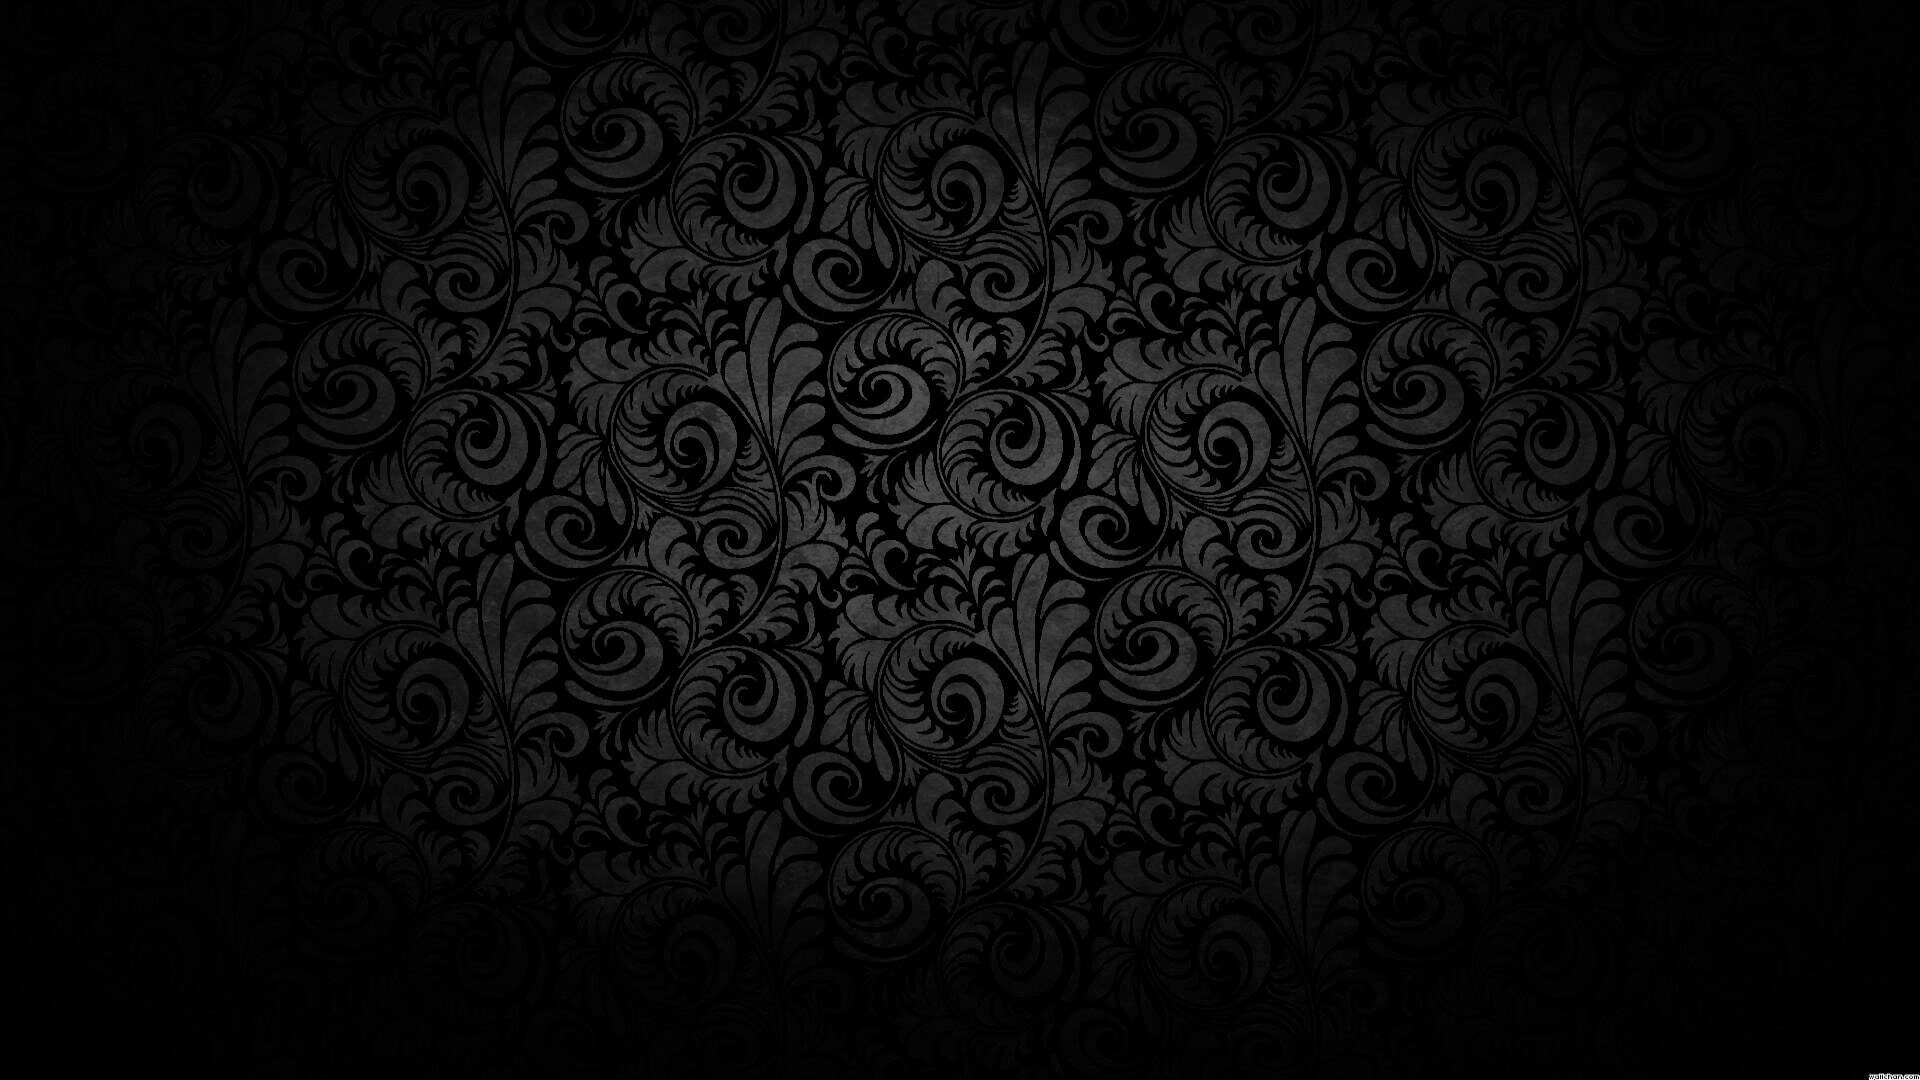 20 Awesome Dark Wallpapers & Backgrounds - Blogenium ...